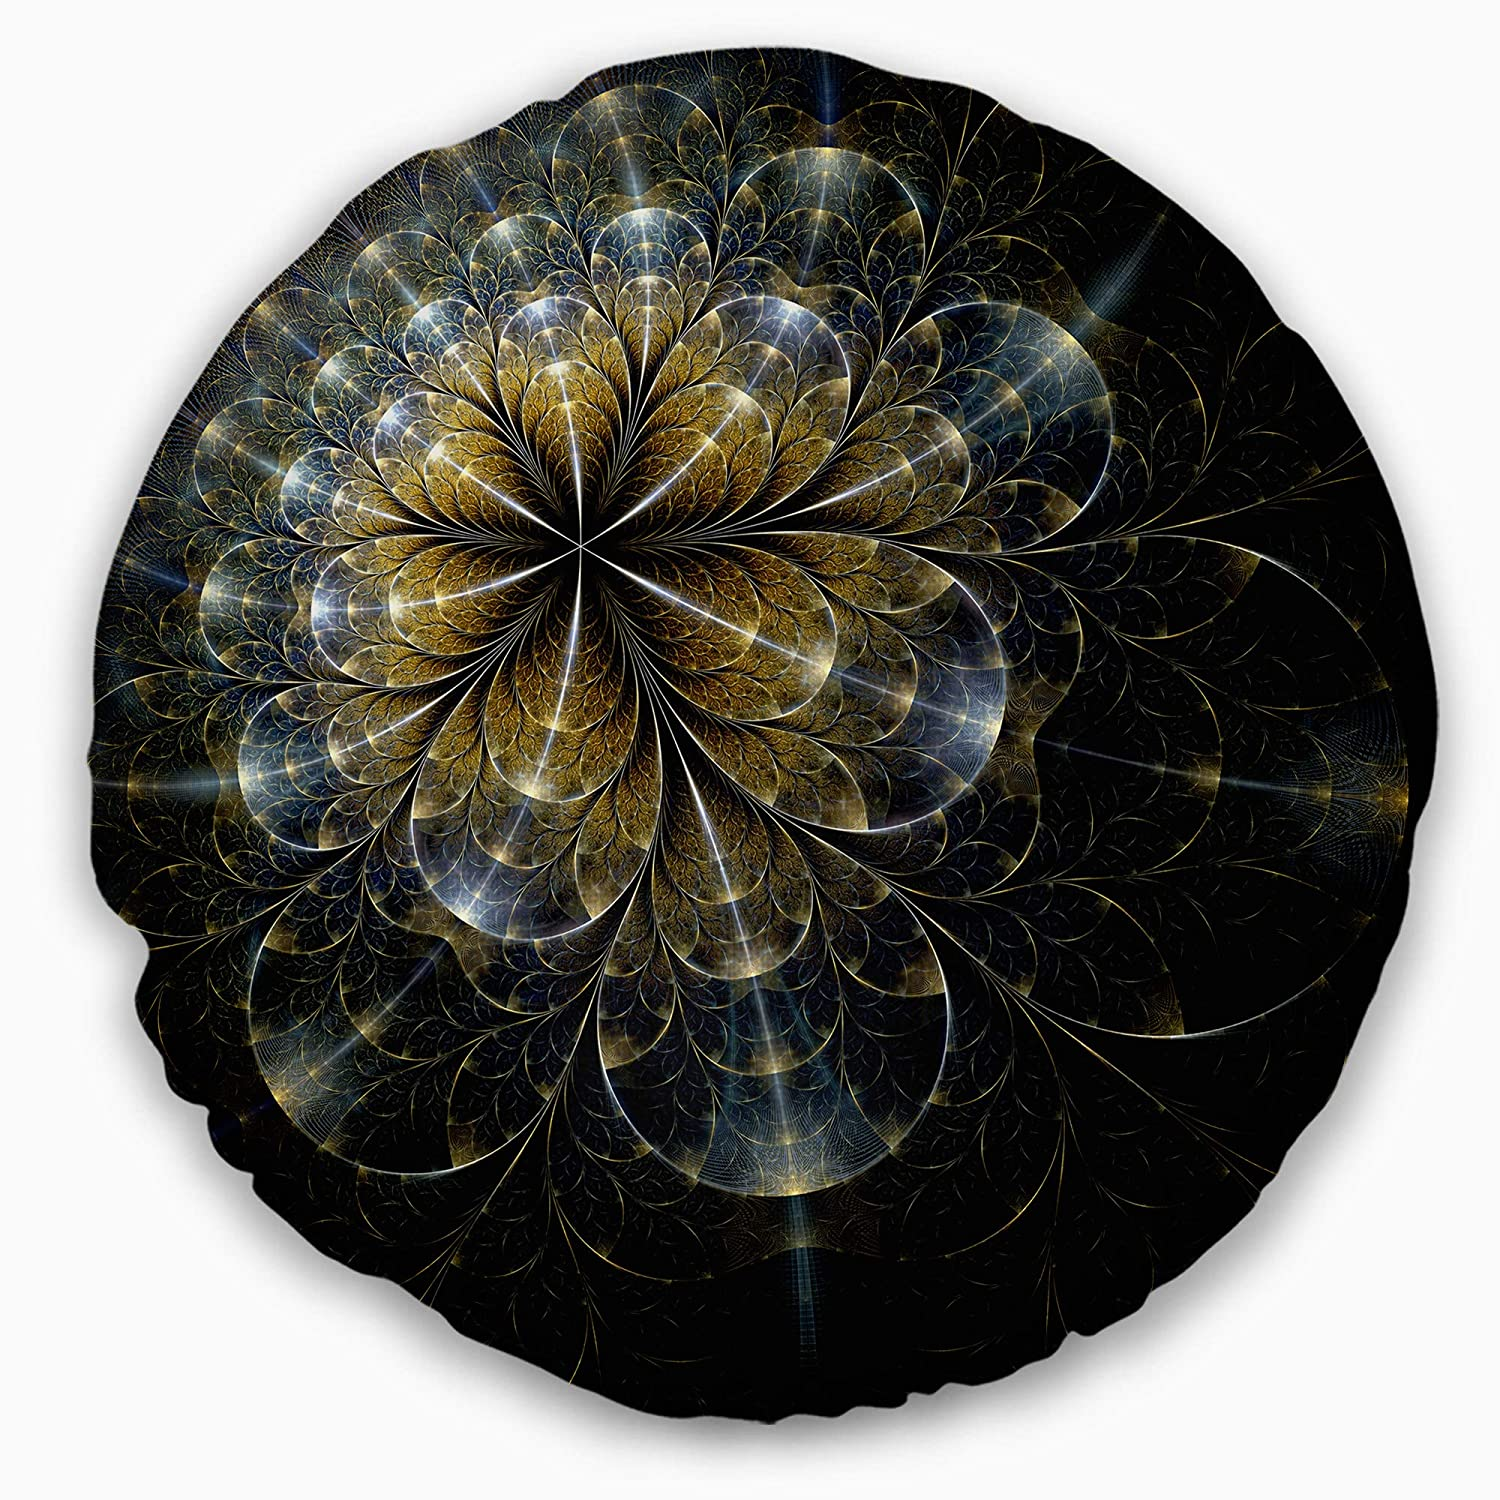 Designart CU15655-20-20-C Large Mystic Golden Fractal Flower' Floral Round Cushion Cover for Living Room, Sofa Throw Pillow 20', Insert Printed On Both Side